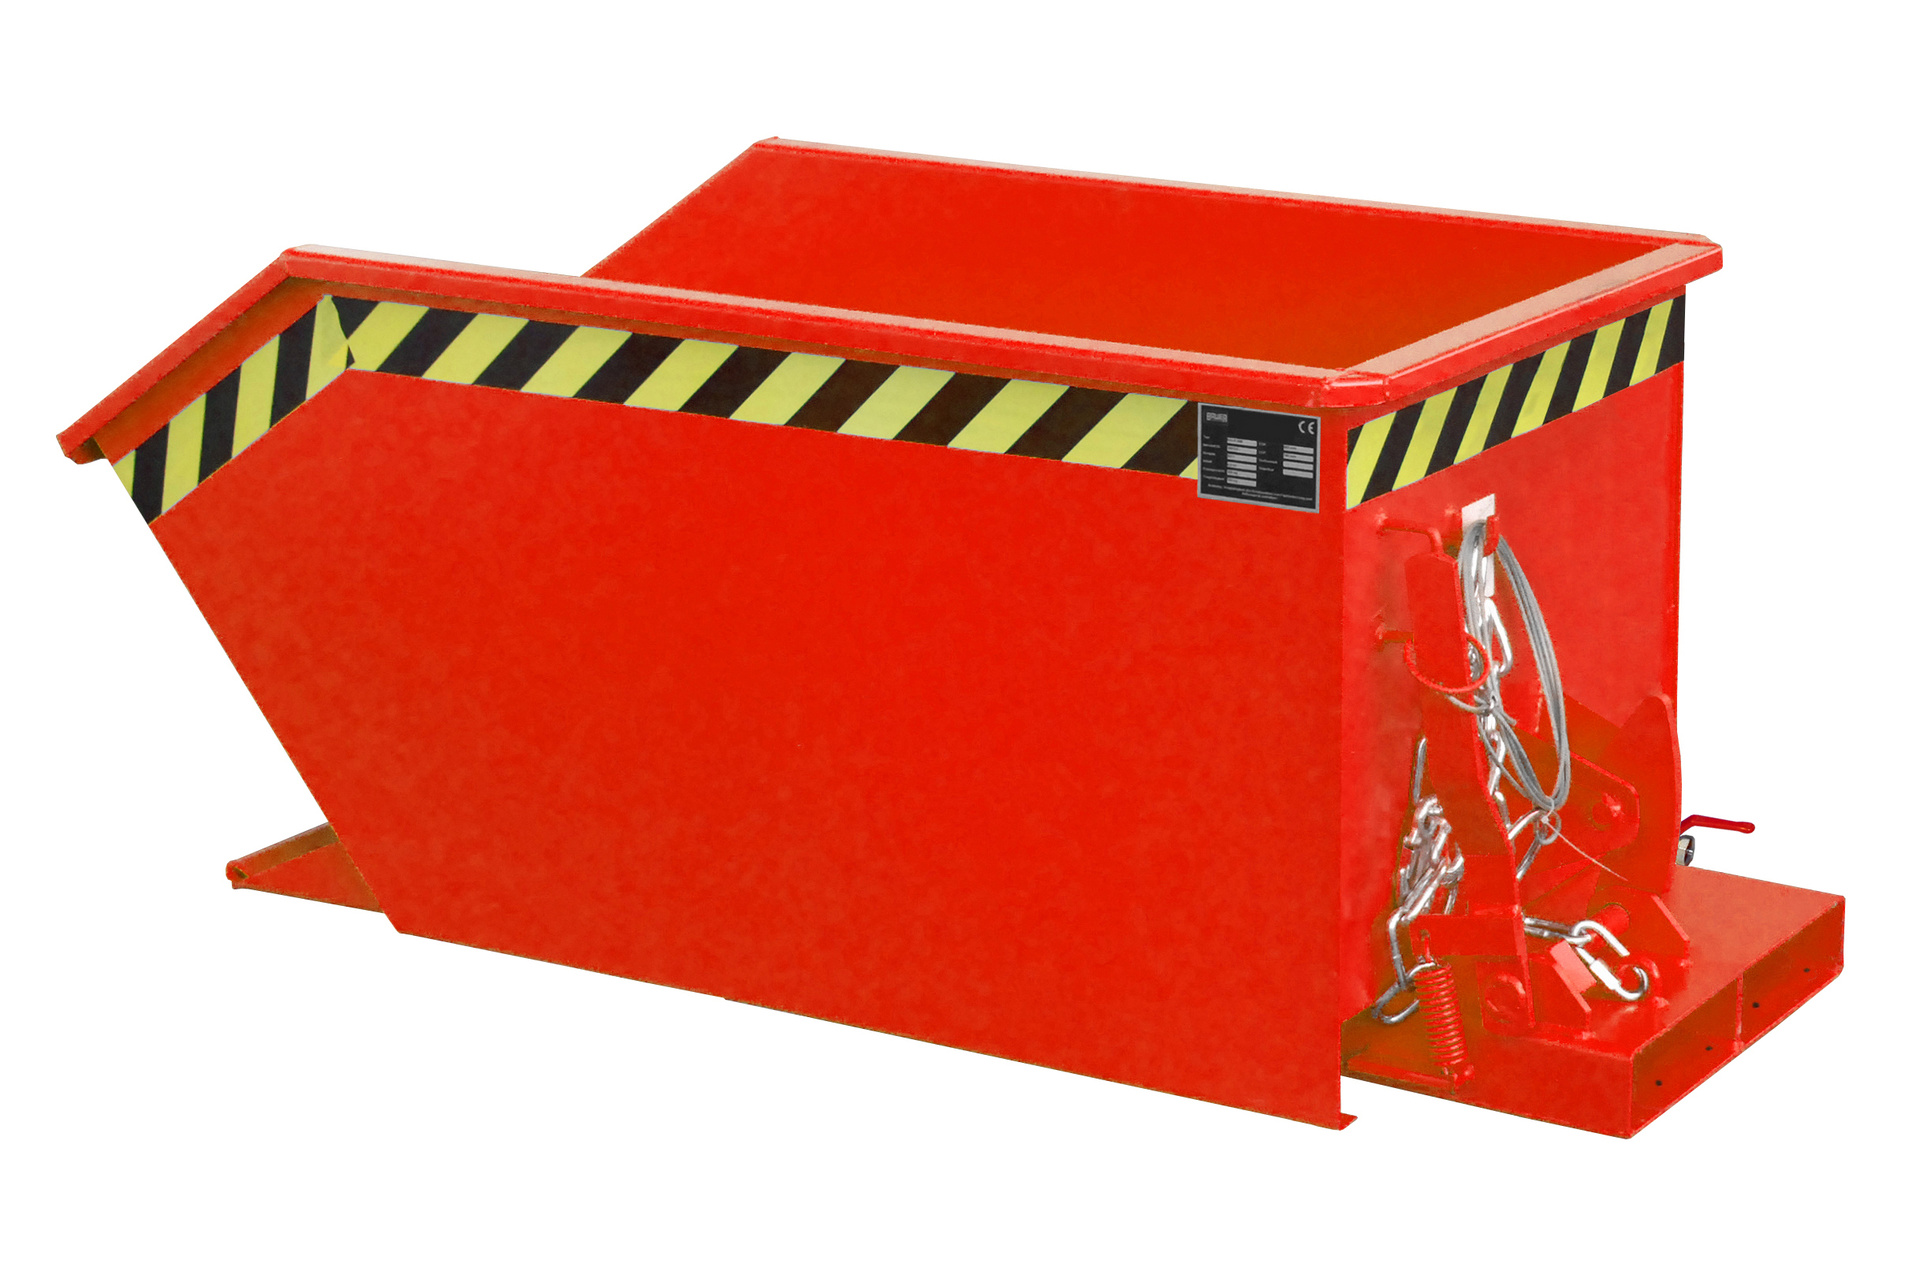 Bauer Südlohn® SGU chip container, tilting in each height by cable from the stacker seat